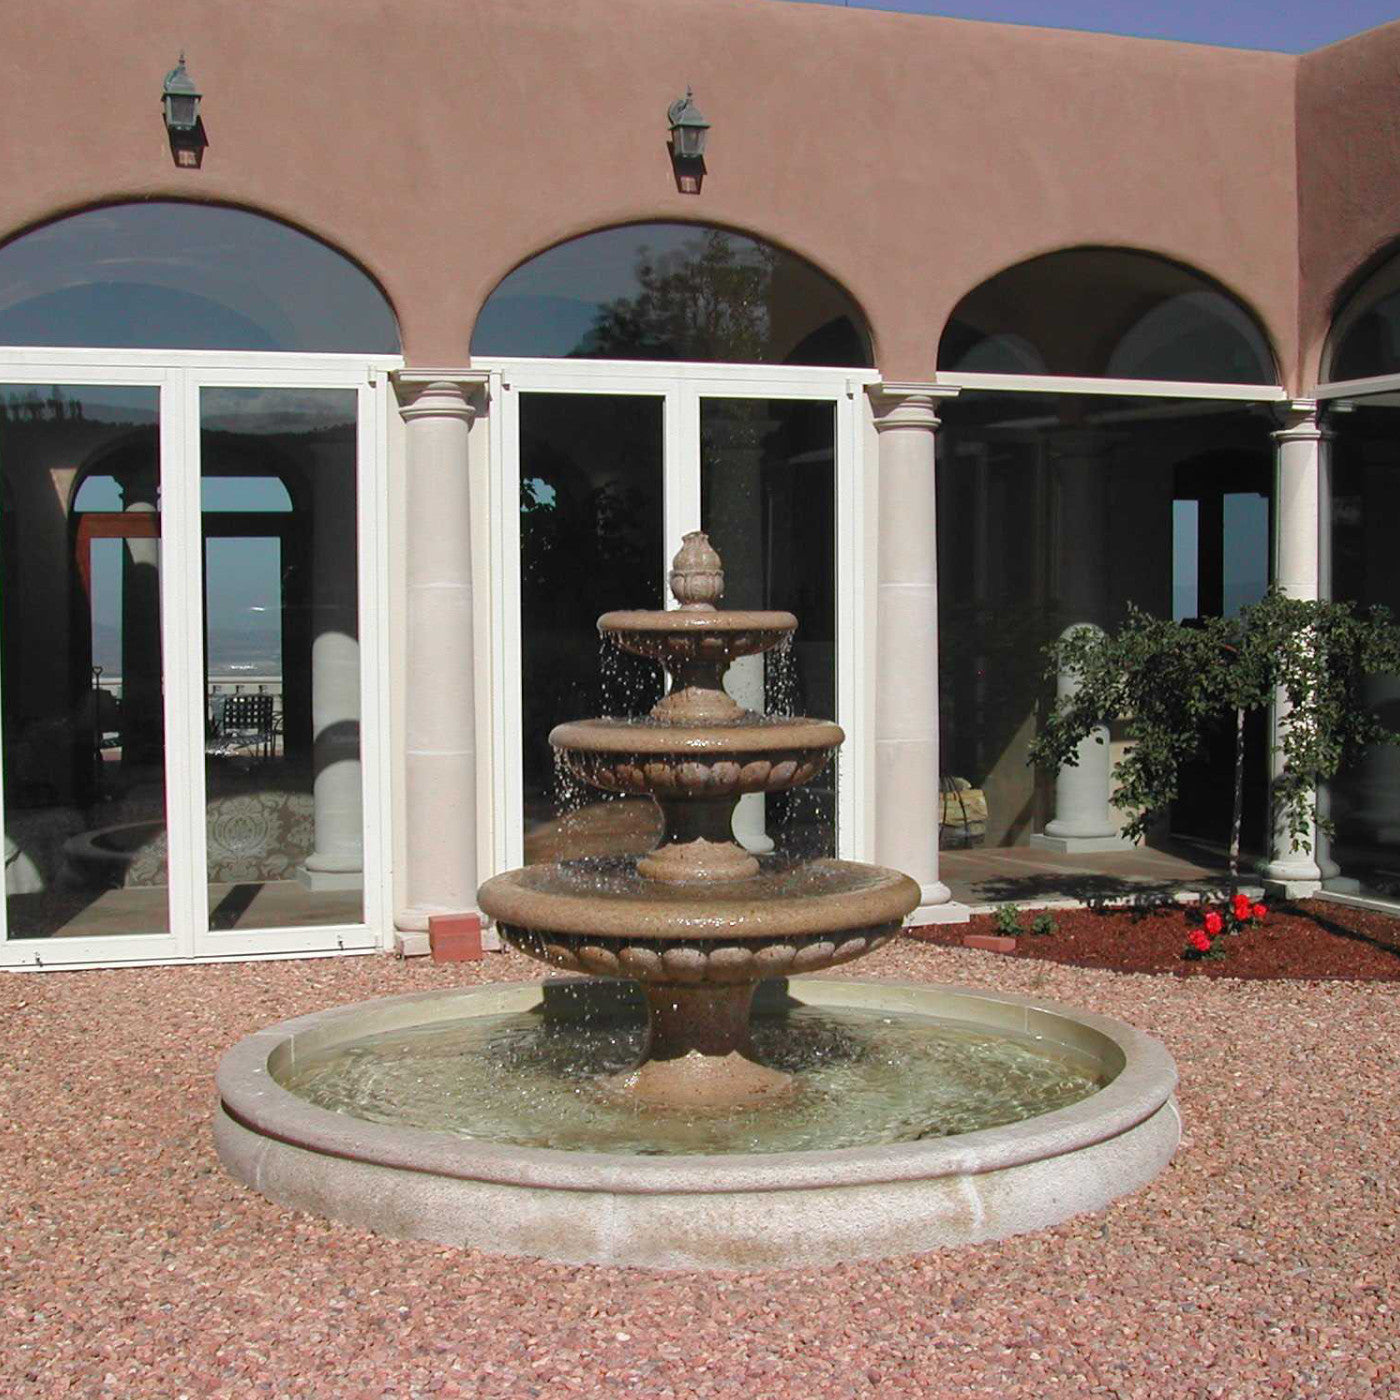 Three tier fountain in outdoor courtyard garden